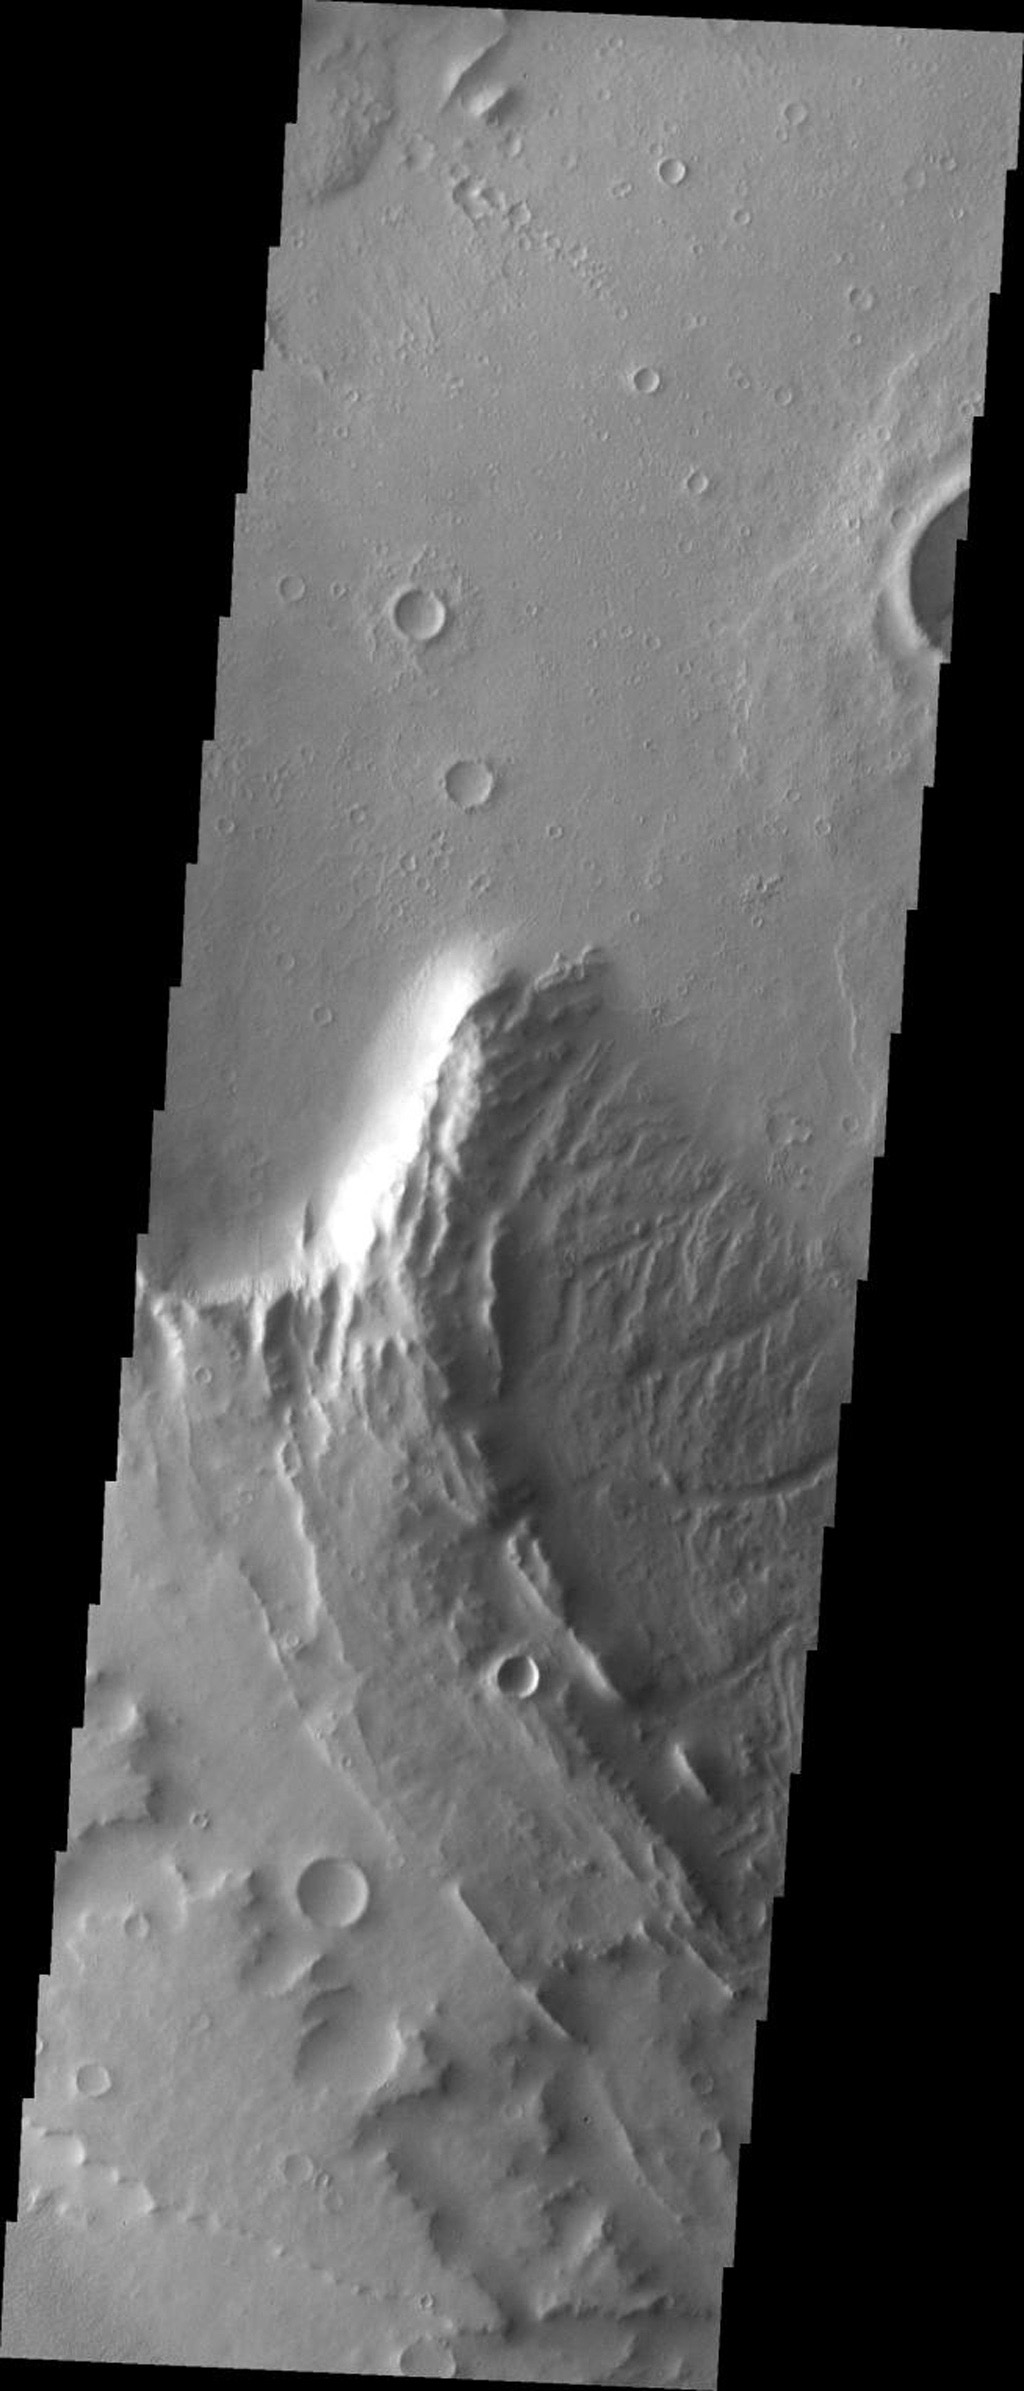 This image from NASA's Mars Odyssey spacecraft shows part of the summit caldera of Apollinaris Patera, an old volcano on Mars that has undergone extensive erosion.